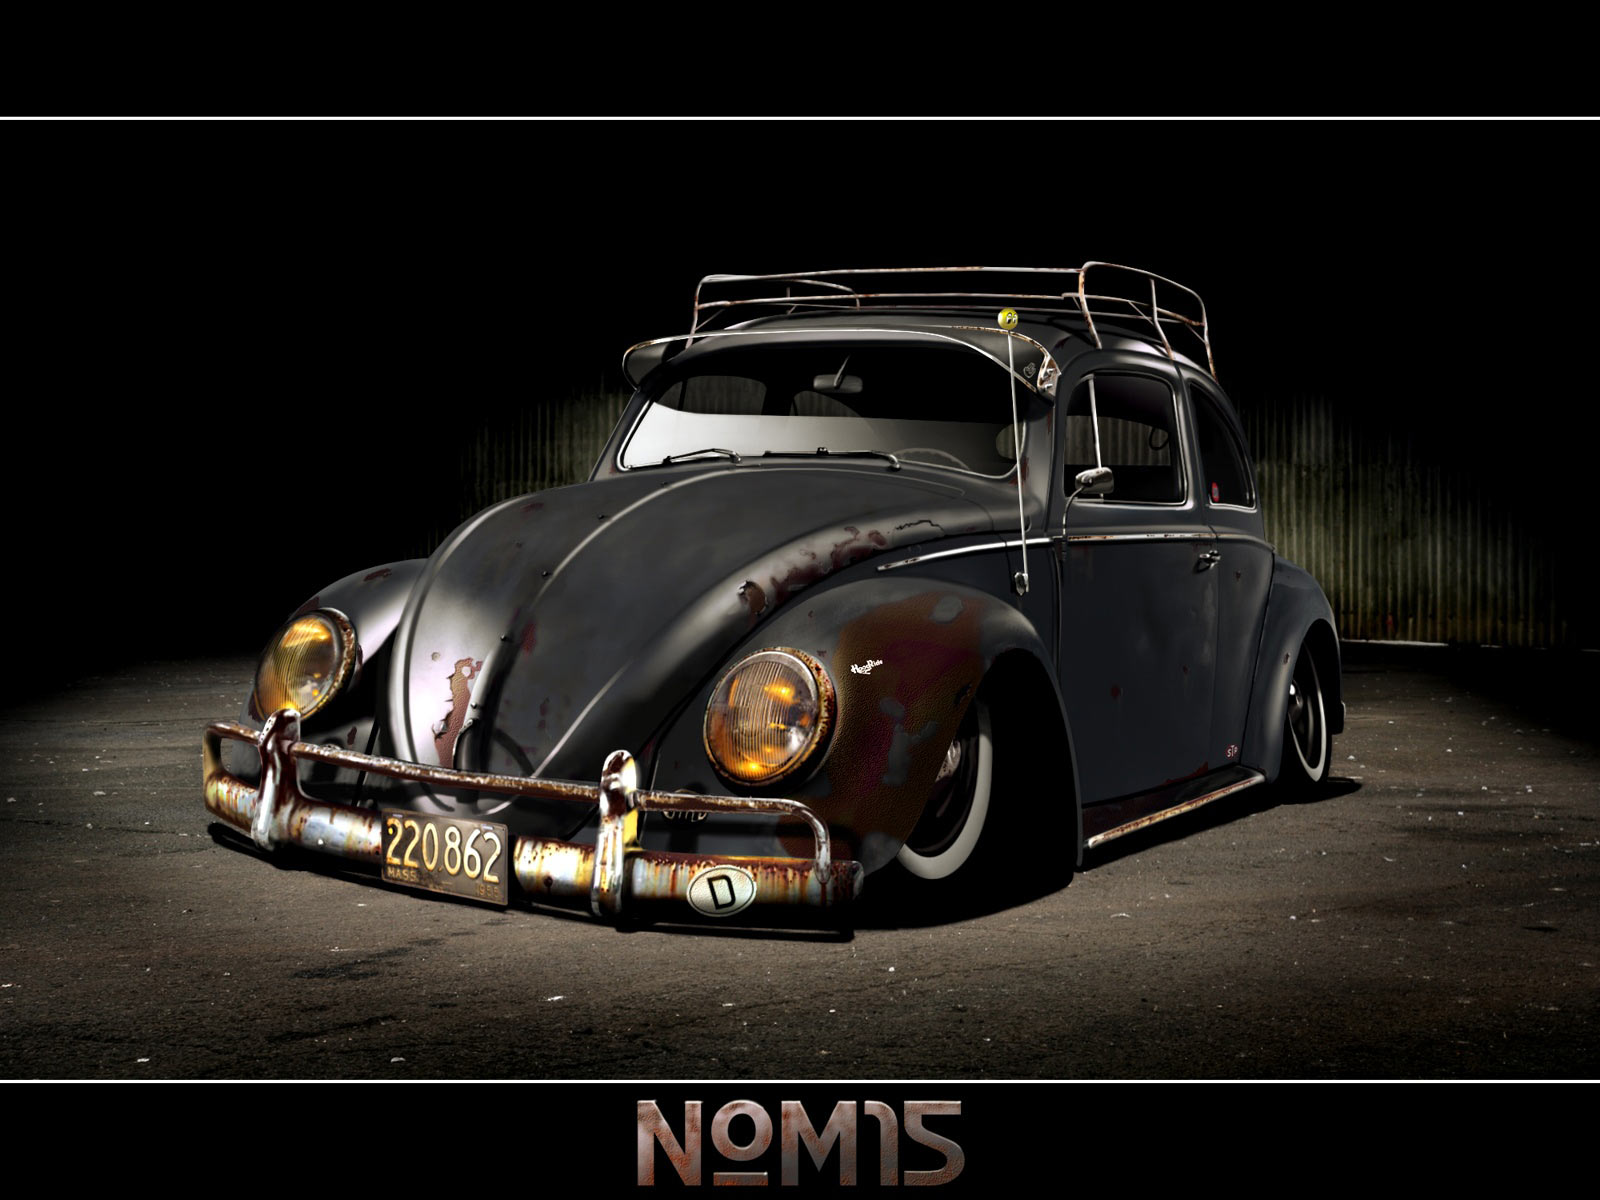 cars wallpapers for desktop cool cars pictures for desktop cool cars 1600x1200